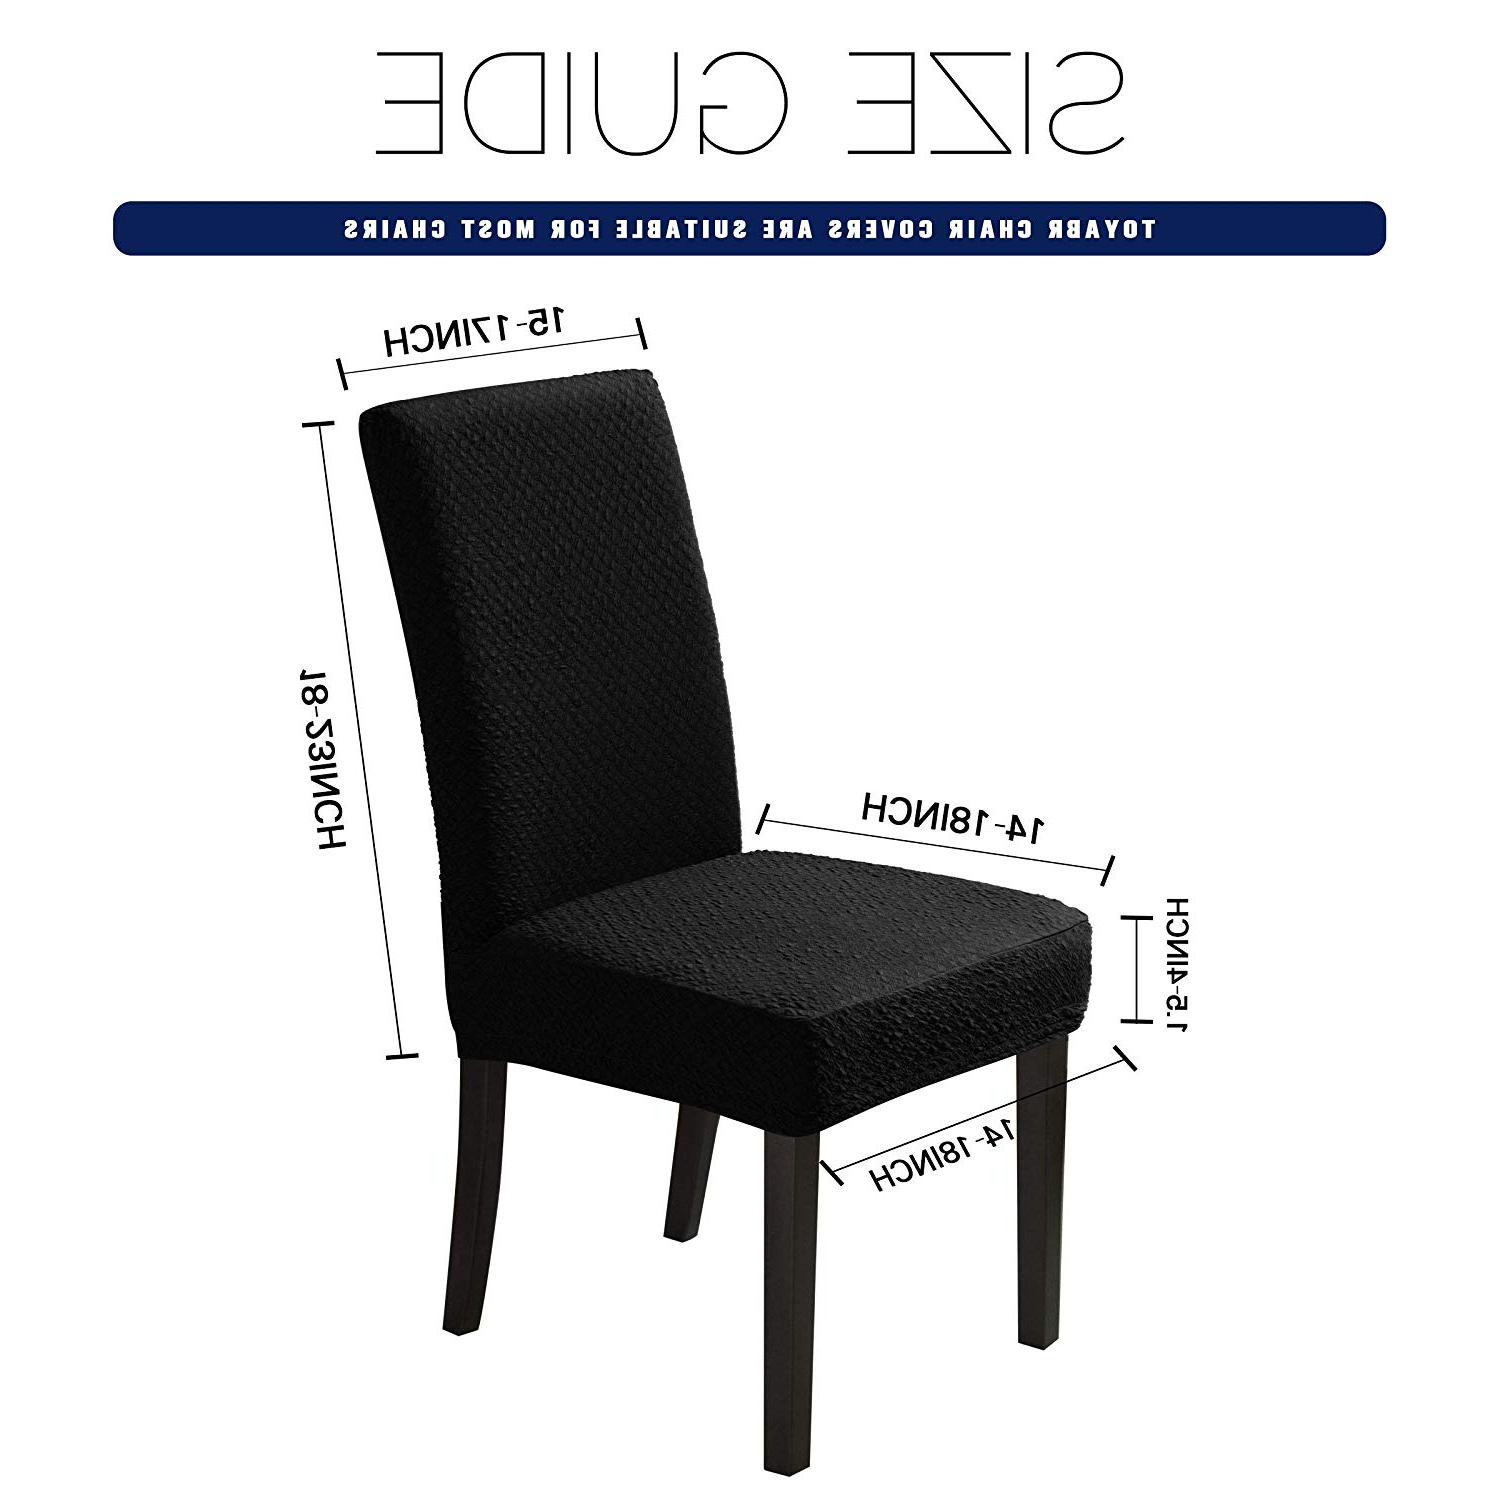 Ingred Extending Dining Tables in Most Up-to-Date Toyabr Dining Chair Covers Seersucker Stretchy Spandex Chair Protecter  Slipcovers For Banquet Wedding Party Dining Room (4Pcs, Black)